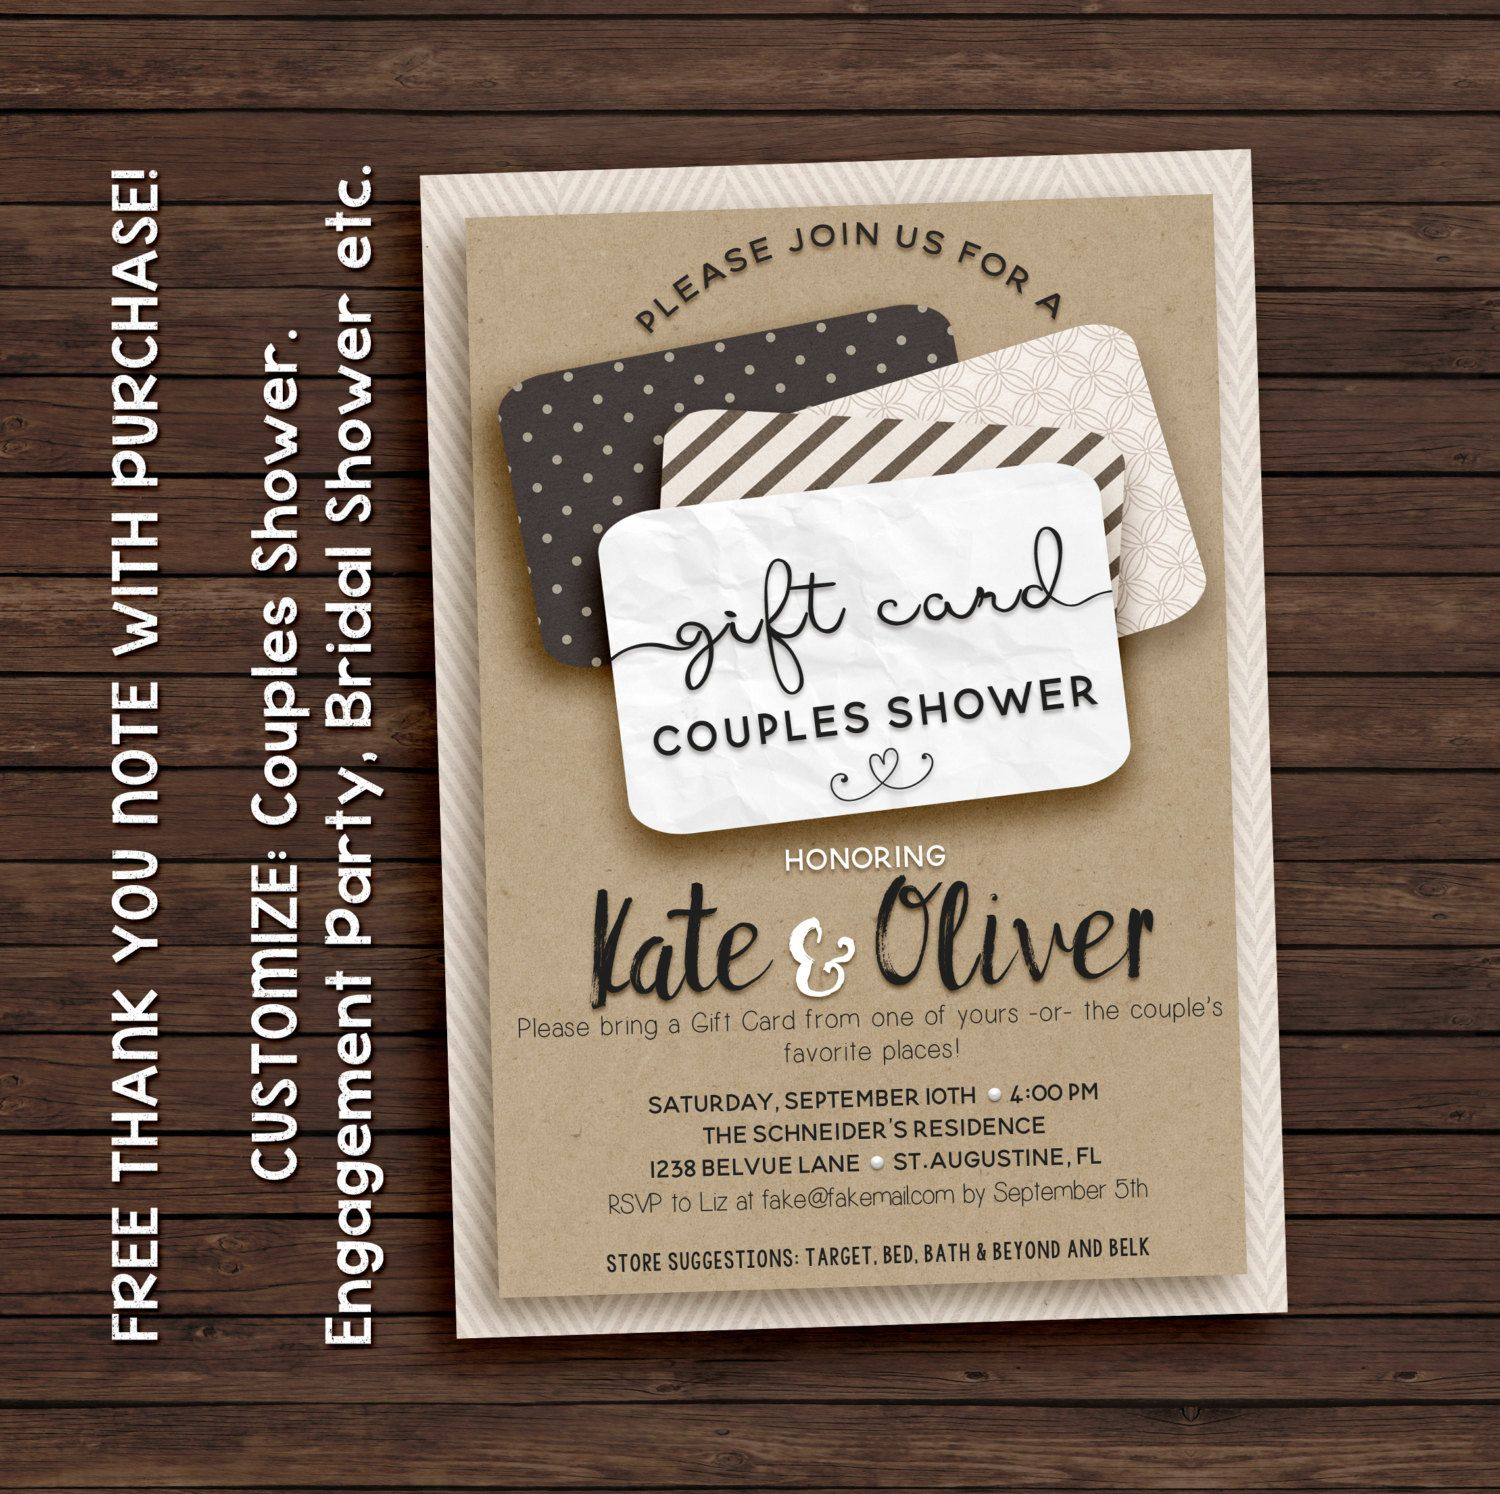 Gift Card Shower Invitation Couples Shower Invitations Couple Wedding Shower Wedding Shower Invitations